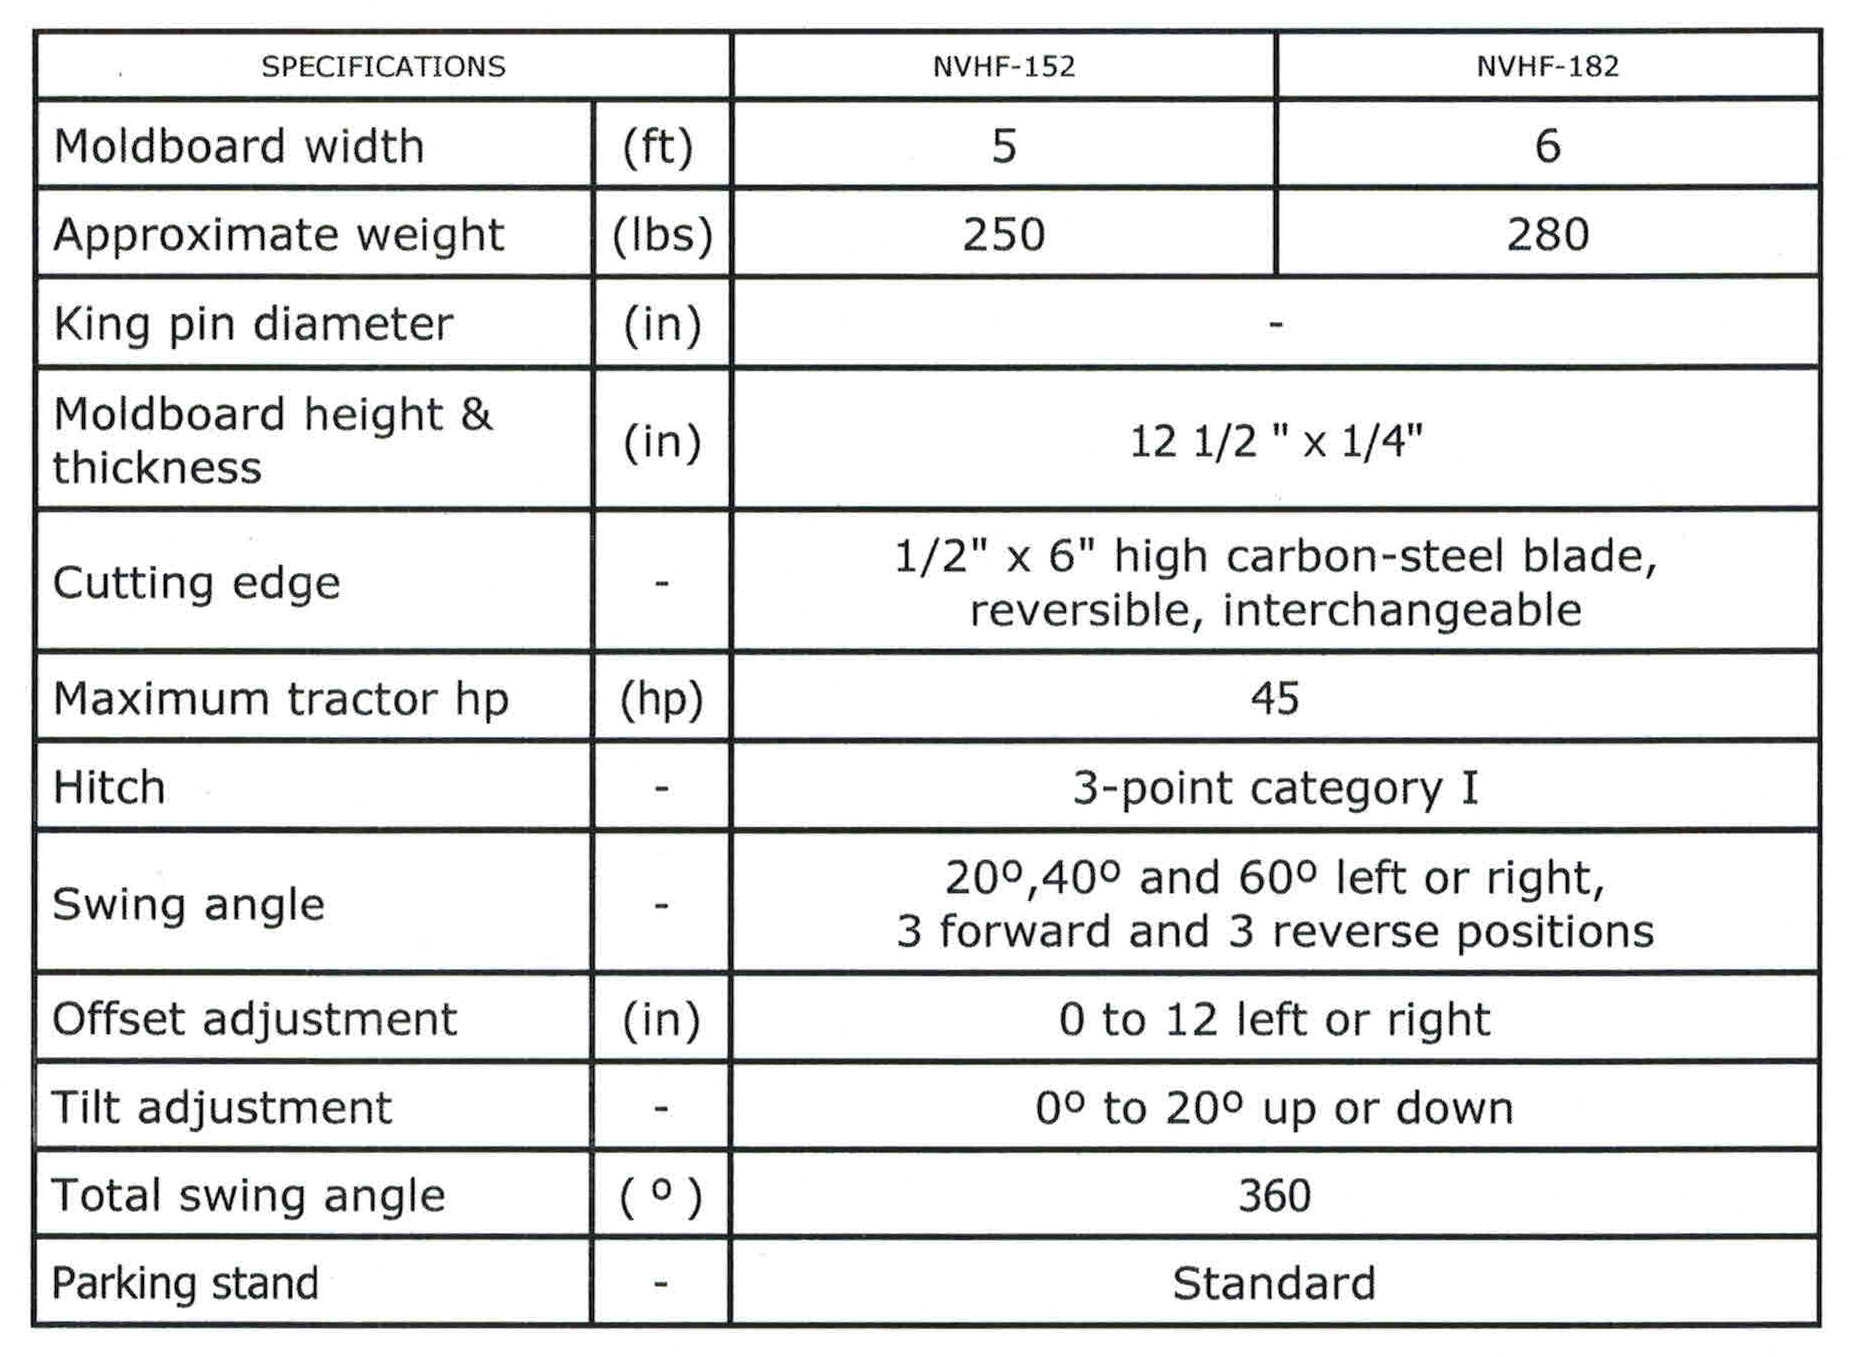 Specifications For NVHF Series Tractor Blades